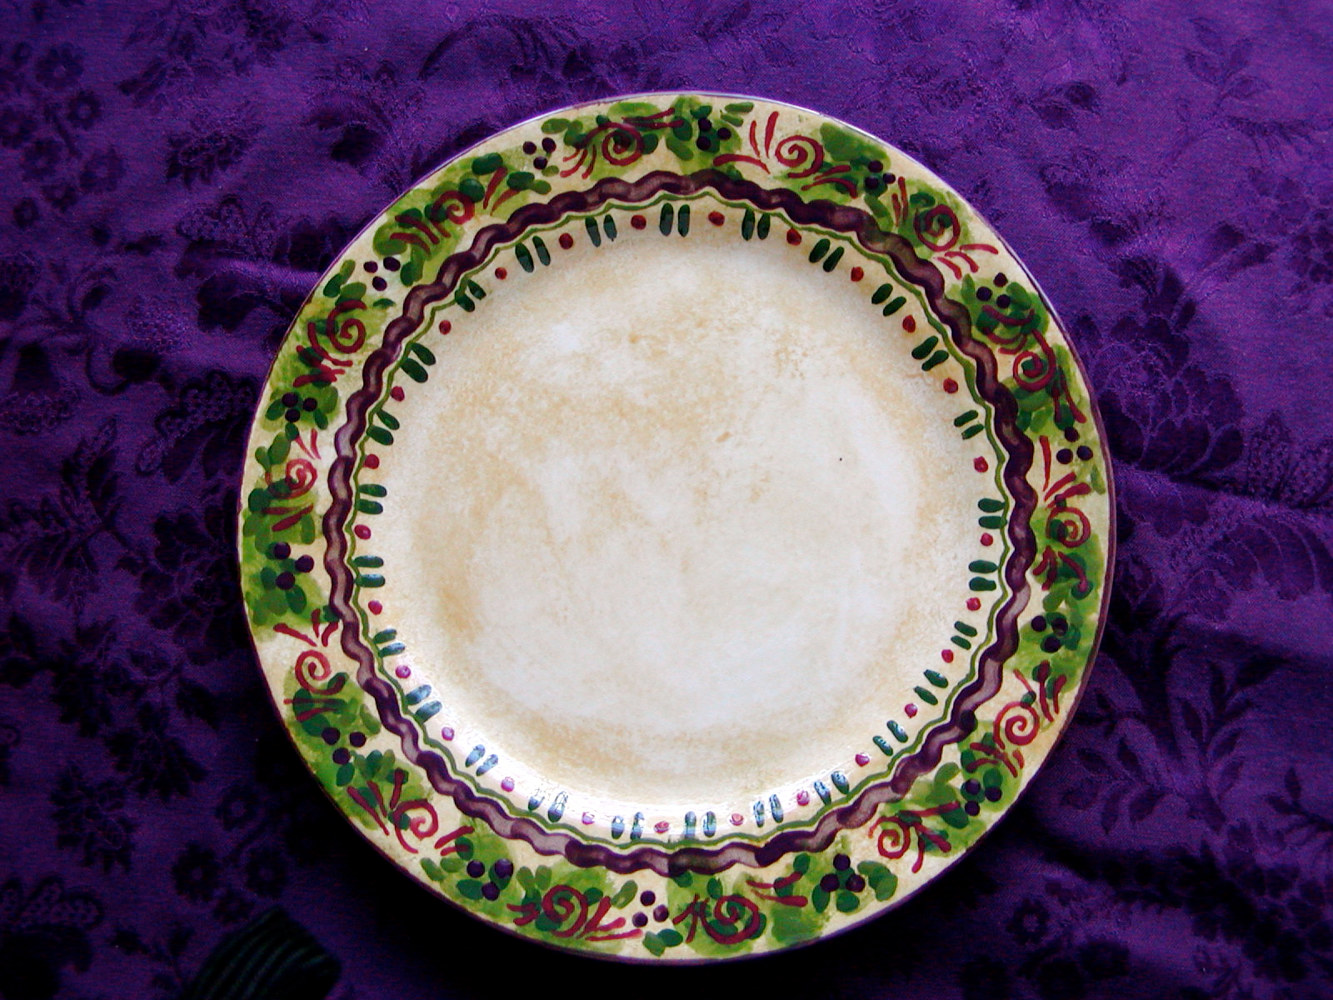 Painting Italianate Eclectic Glazeworks: Dinner Plate Design 7 by Victoria Avila